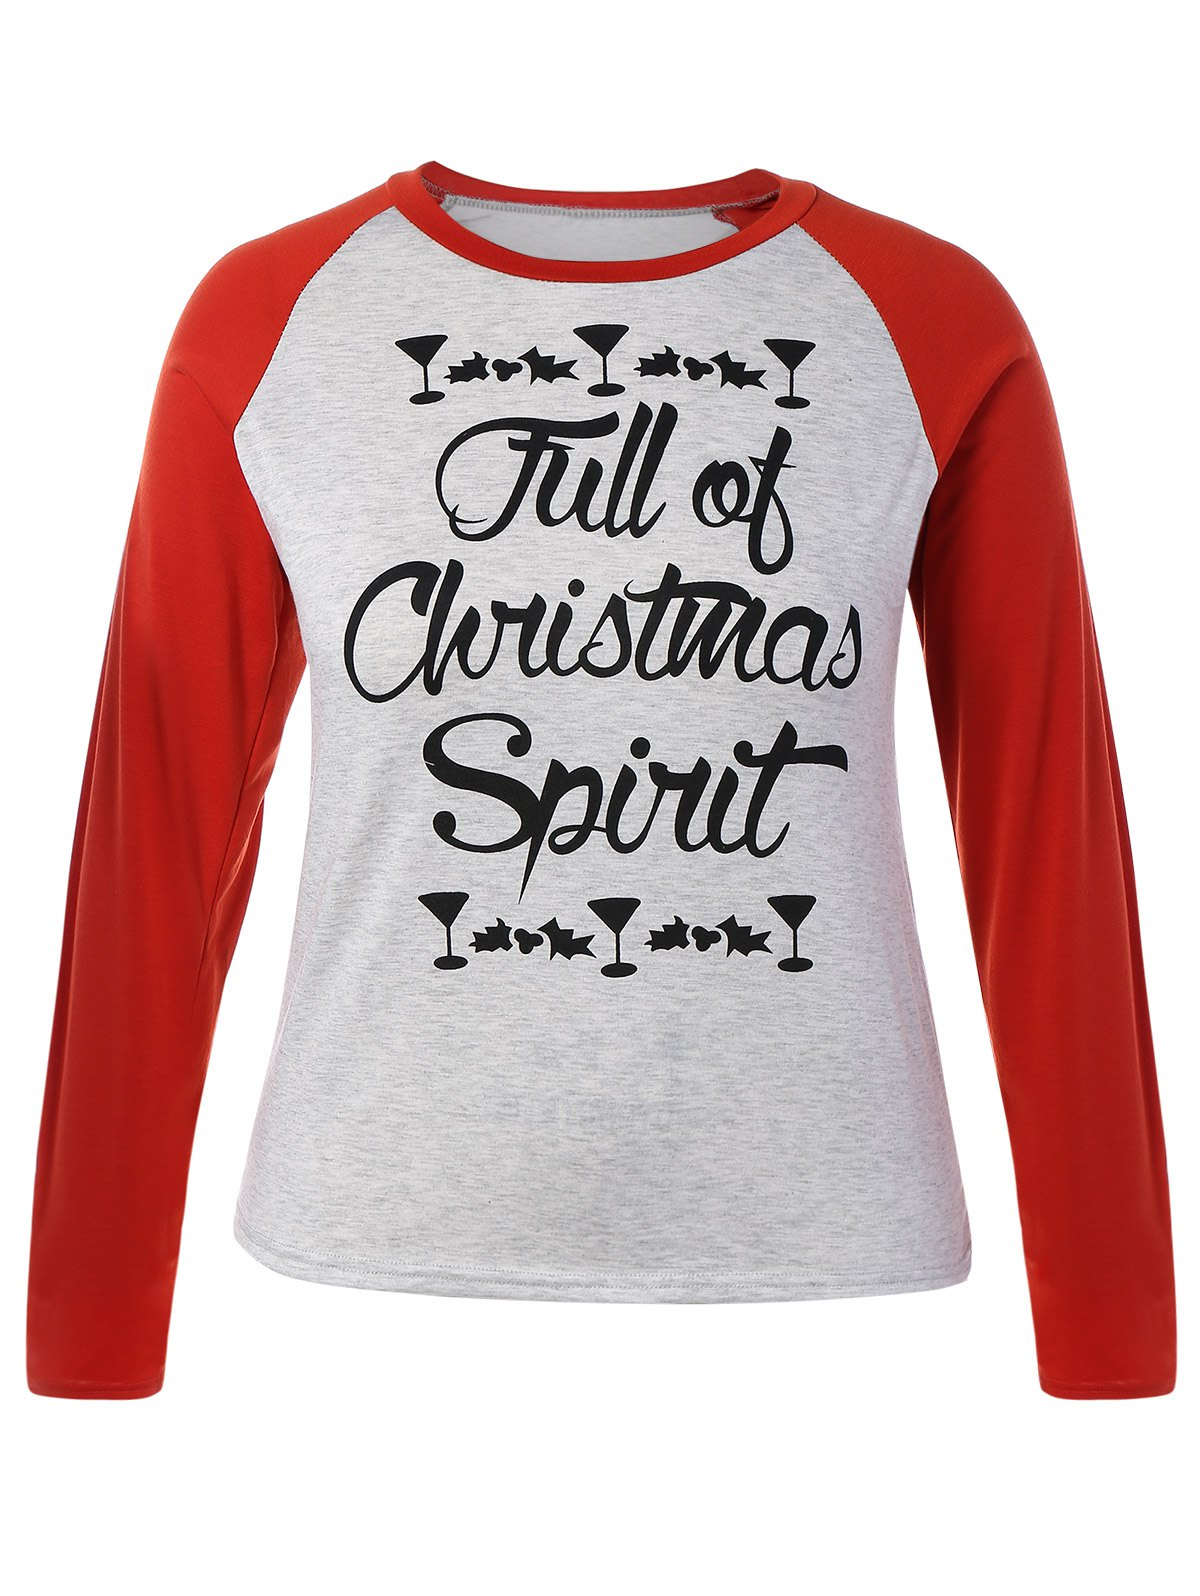 Plus Size Raglan Sleeve Christmas T-ShirtWOMEN<br><br>Size: 3XL; Color: RED; Material: Cotton Blends,Polyester; Shirt Length: Regular; Sleeve Length: Full; Collar: Crew Neck; Style: Fashion; Season: Fall,Spring,Winter; Pattern Type: Letter; Weight: 0.224kg; Package Contents: 1 x T-Shirt;